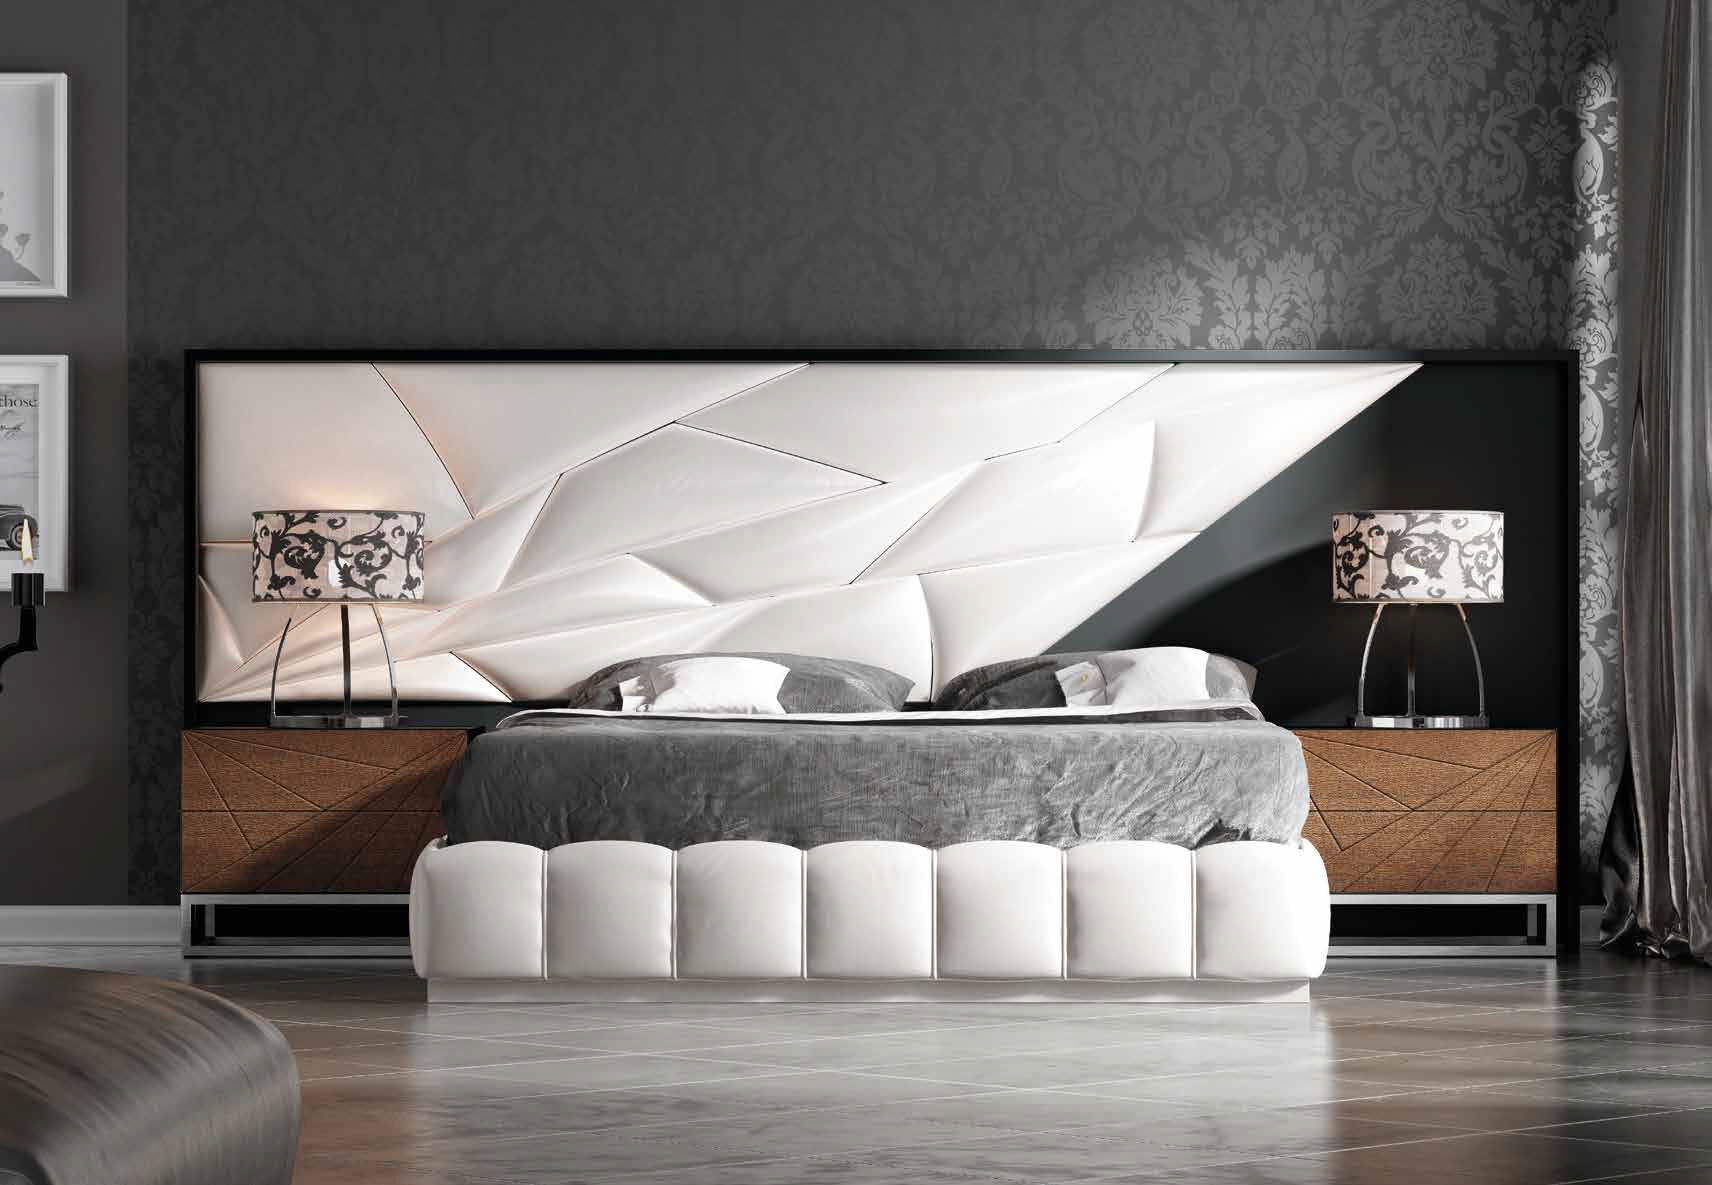 Brands Franco Furniture Bedrooms vol1, Spain DOR 16